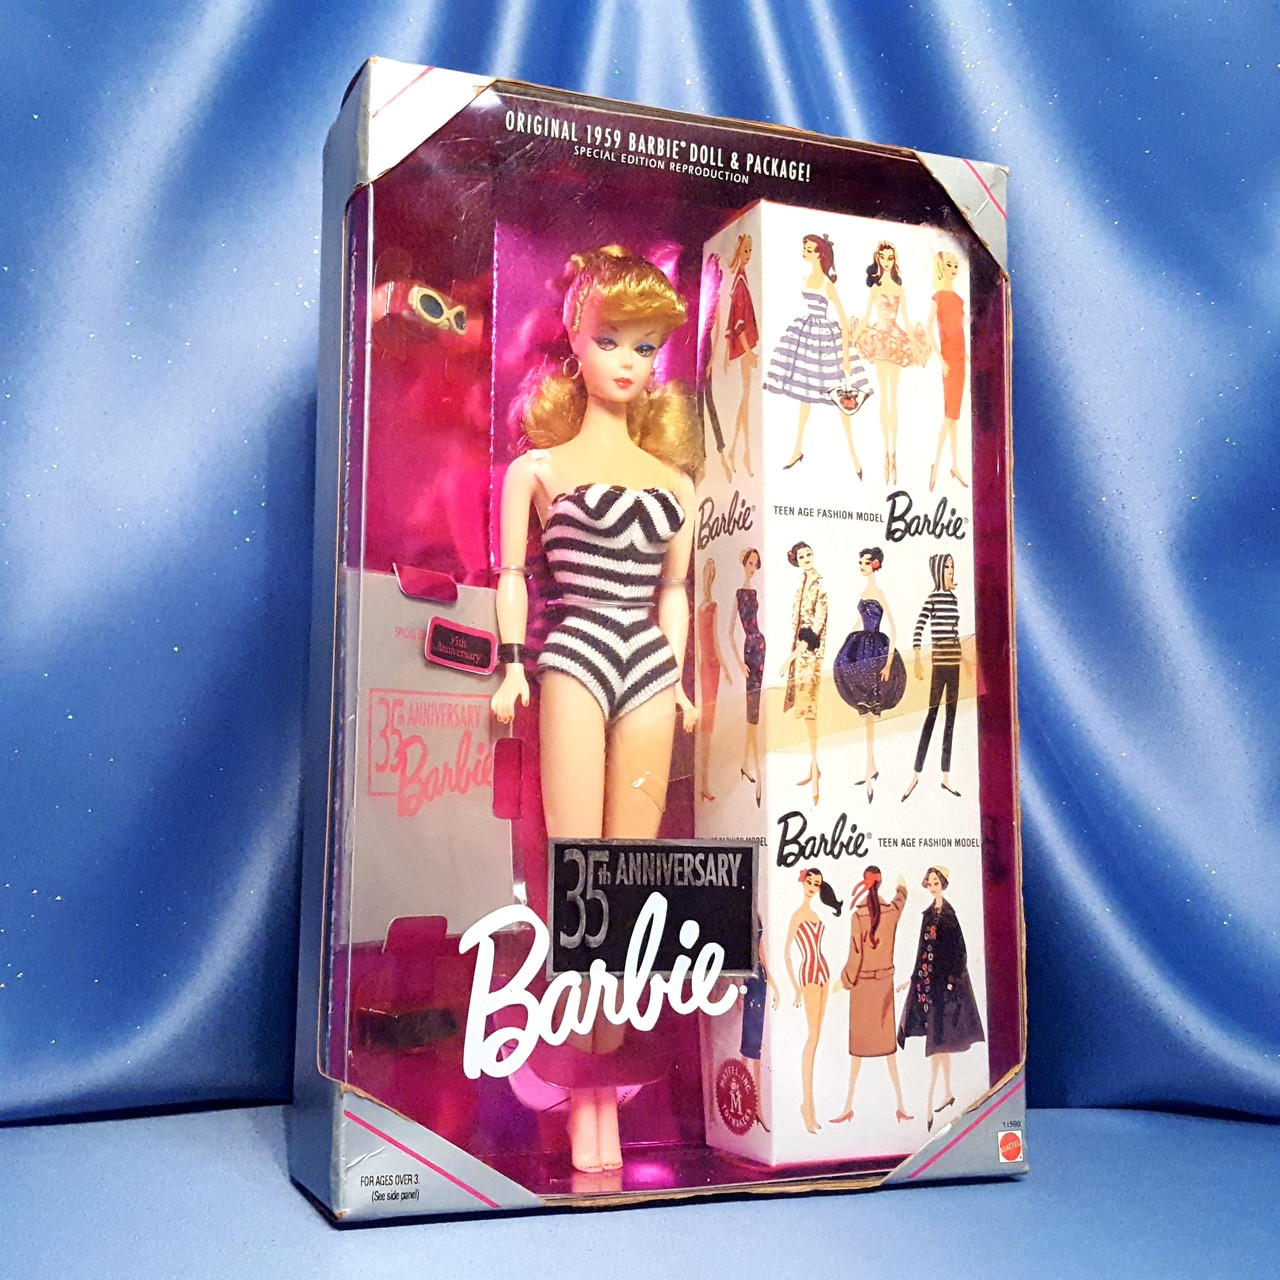 Barbie 35th. Anniversary Doll - Reproduction of the Ori